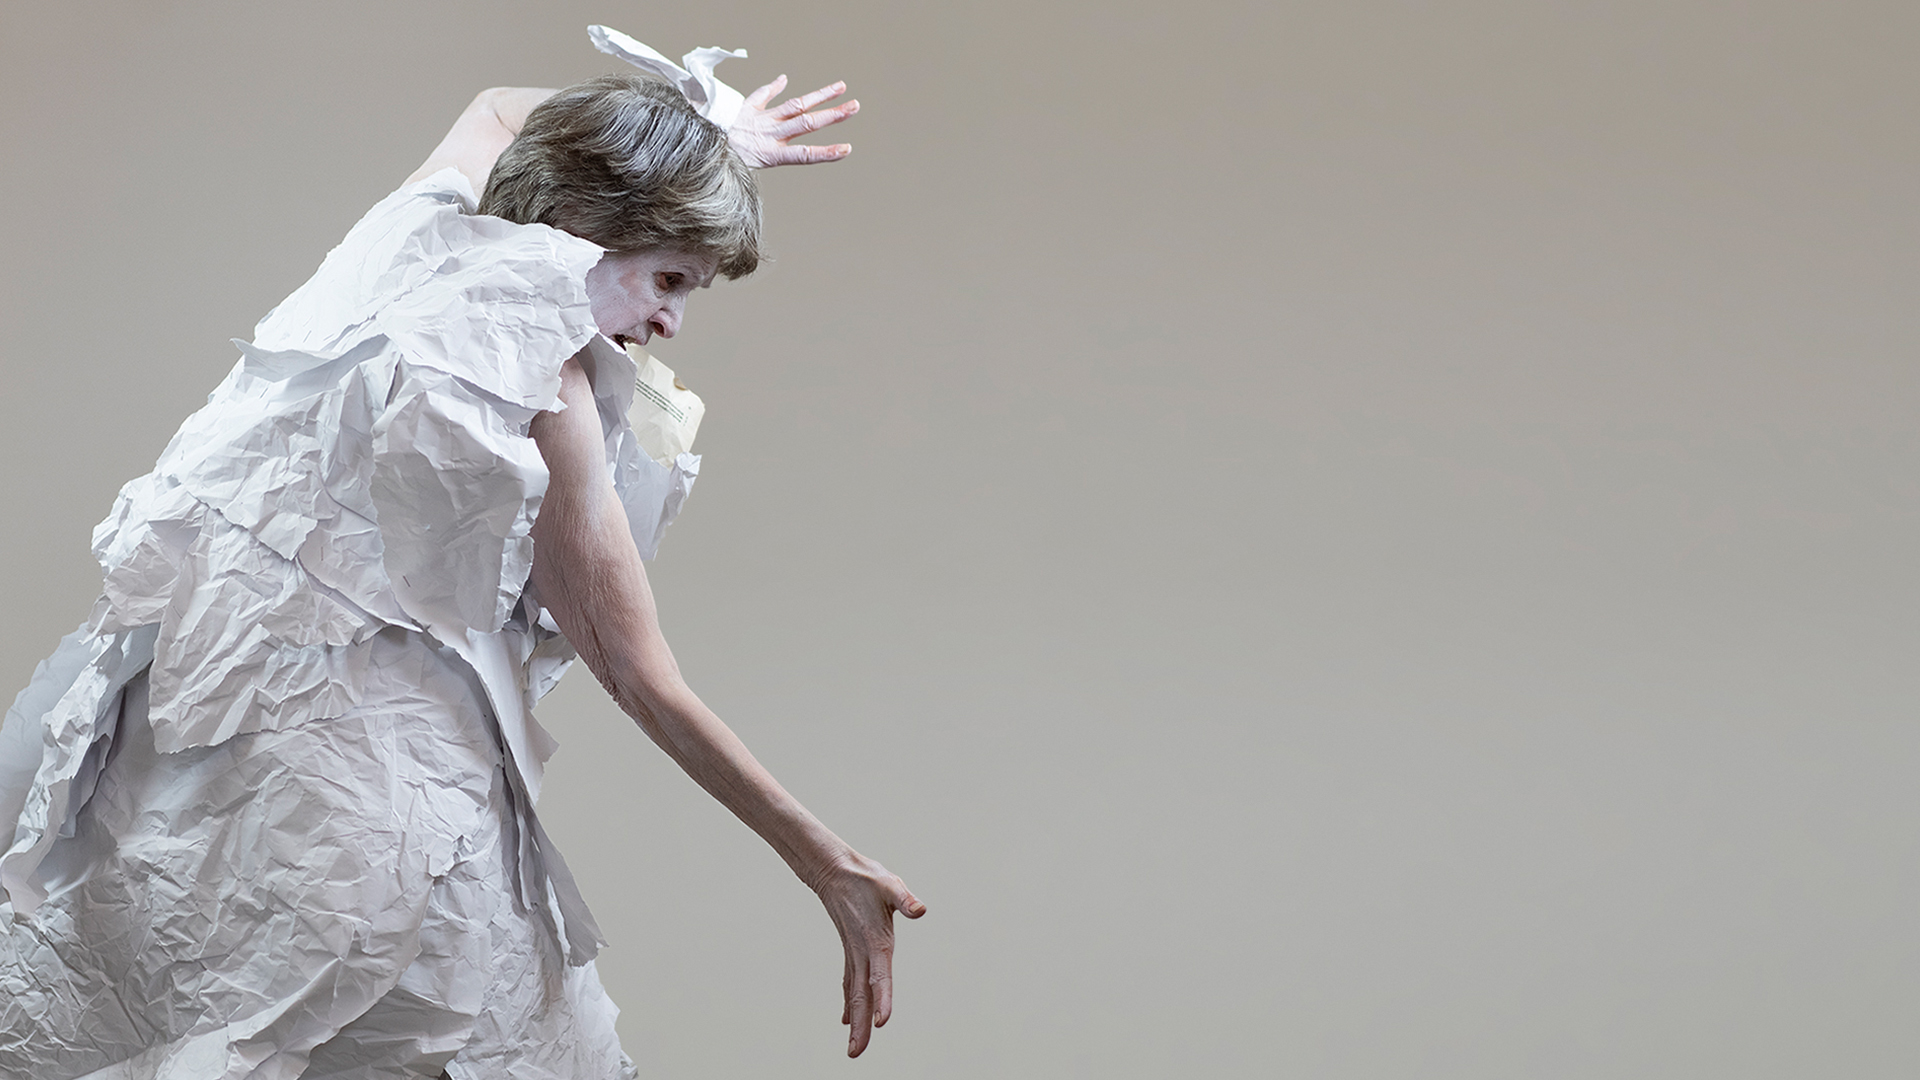 'An ode to the forest' dance work brings library and trees together